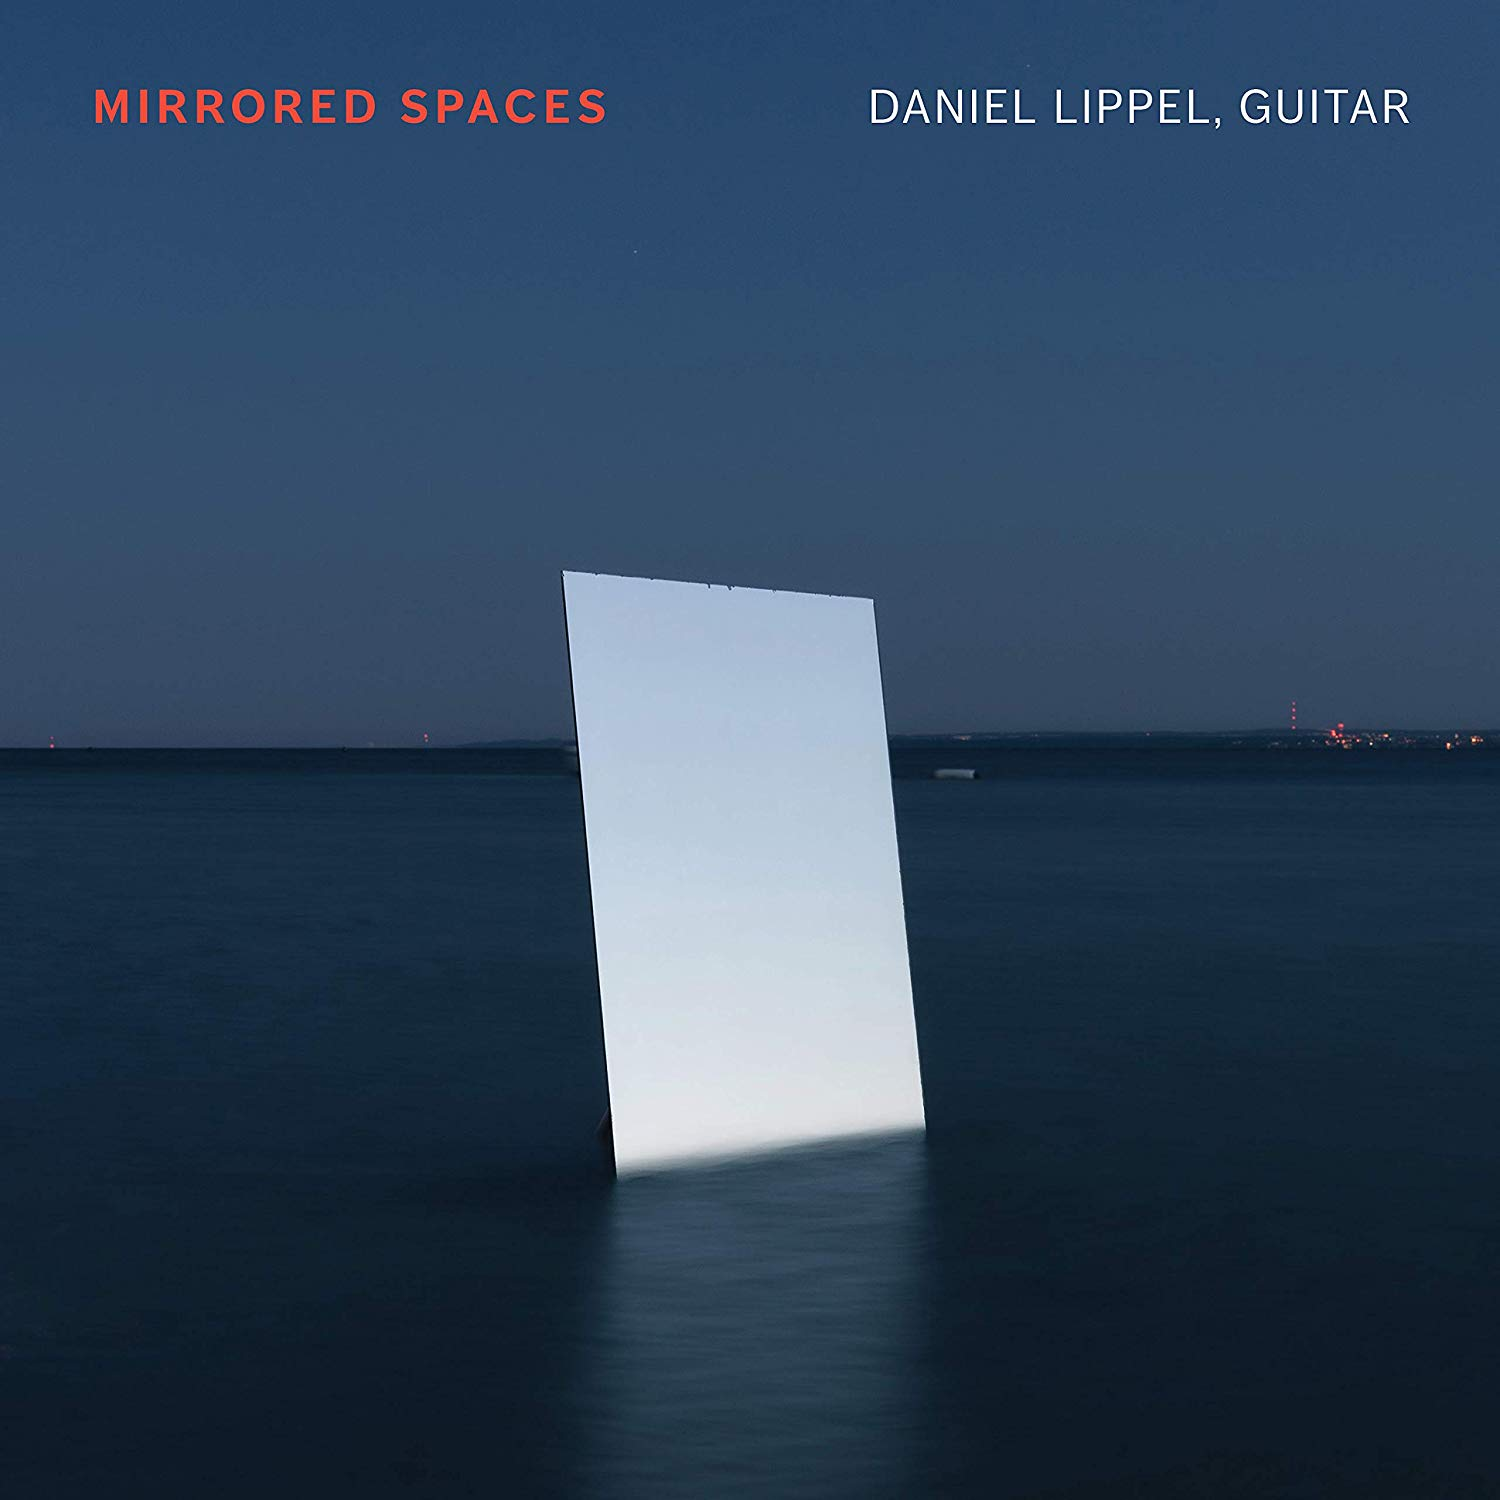 [Mirrored Spaces CD cover]